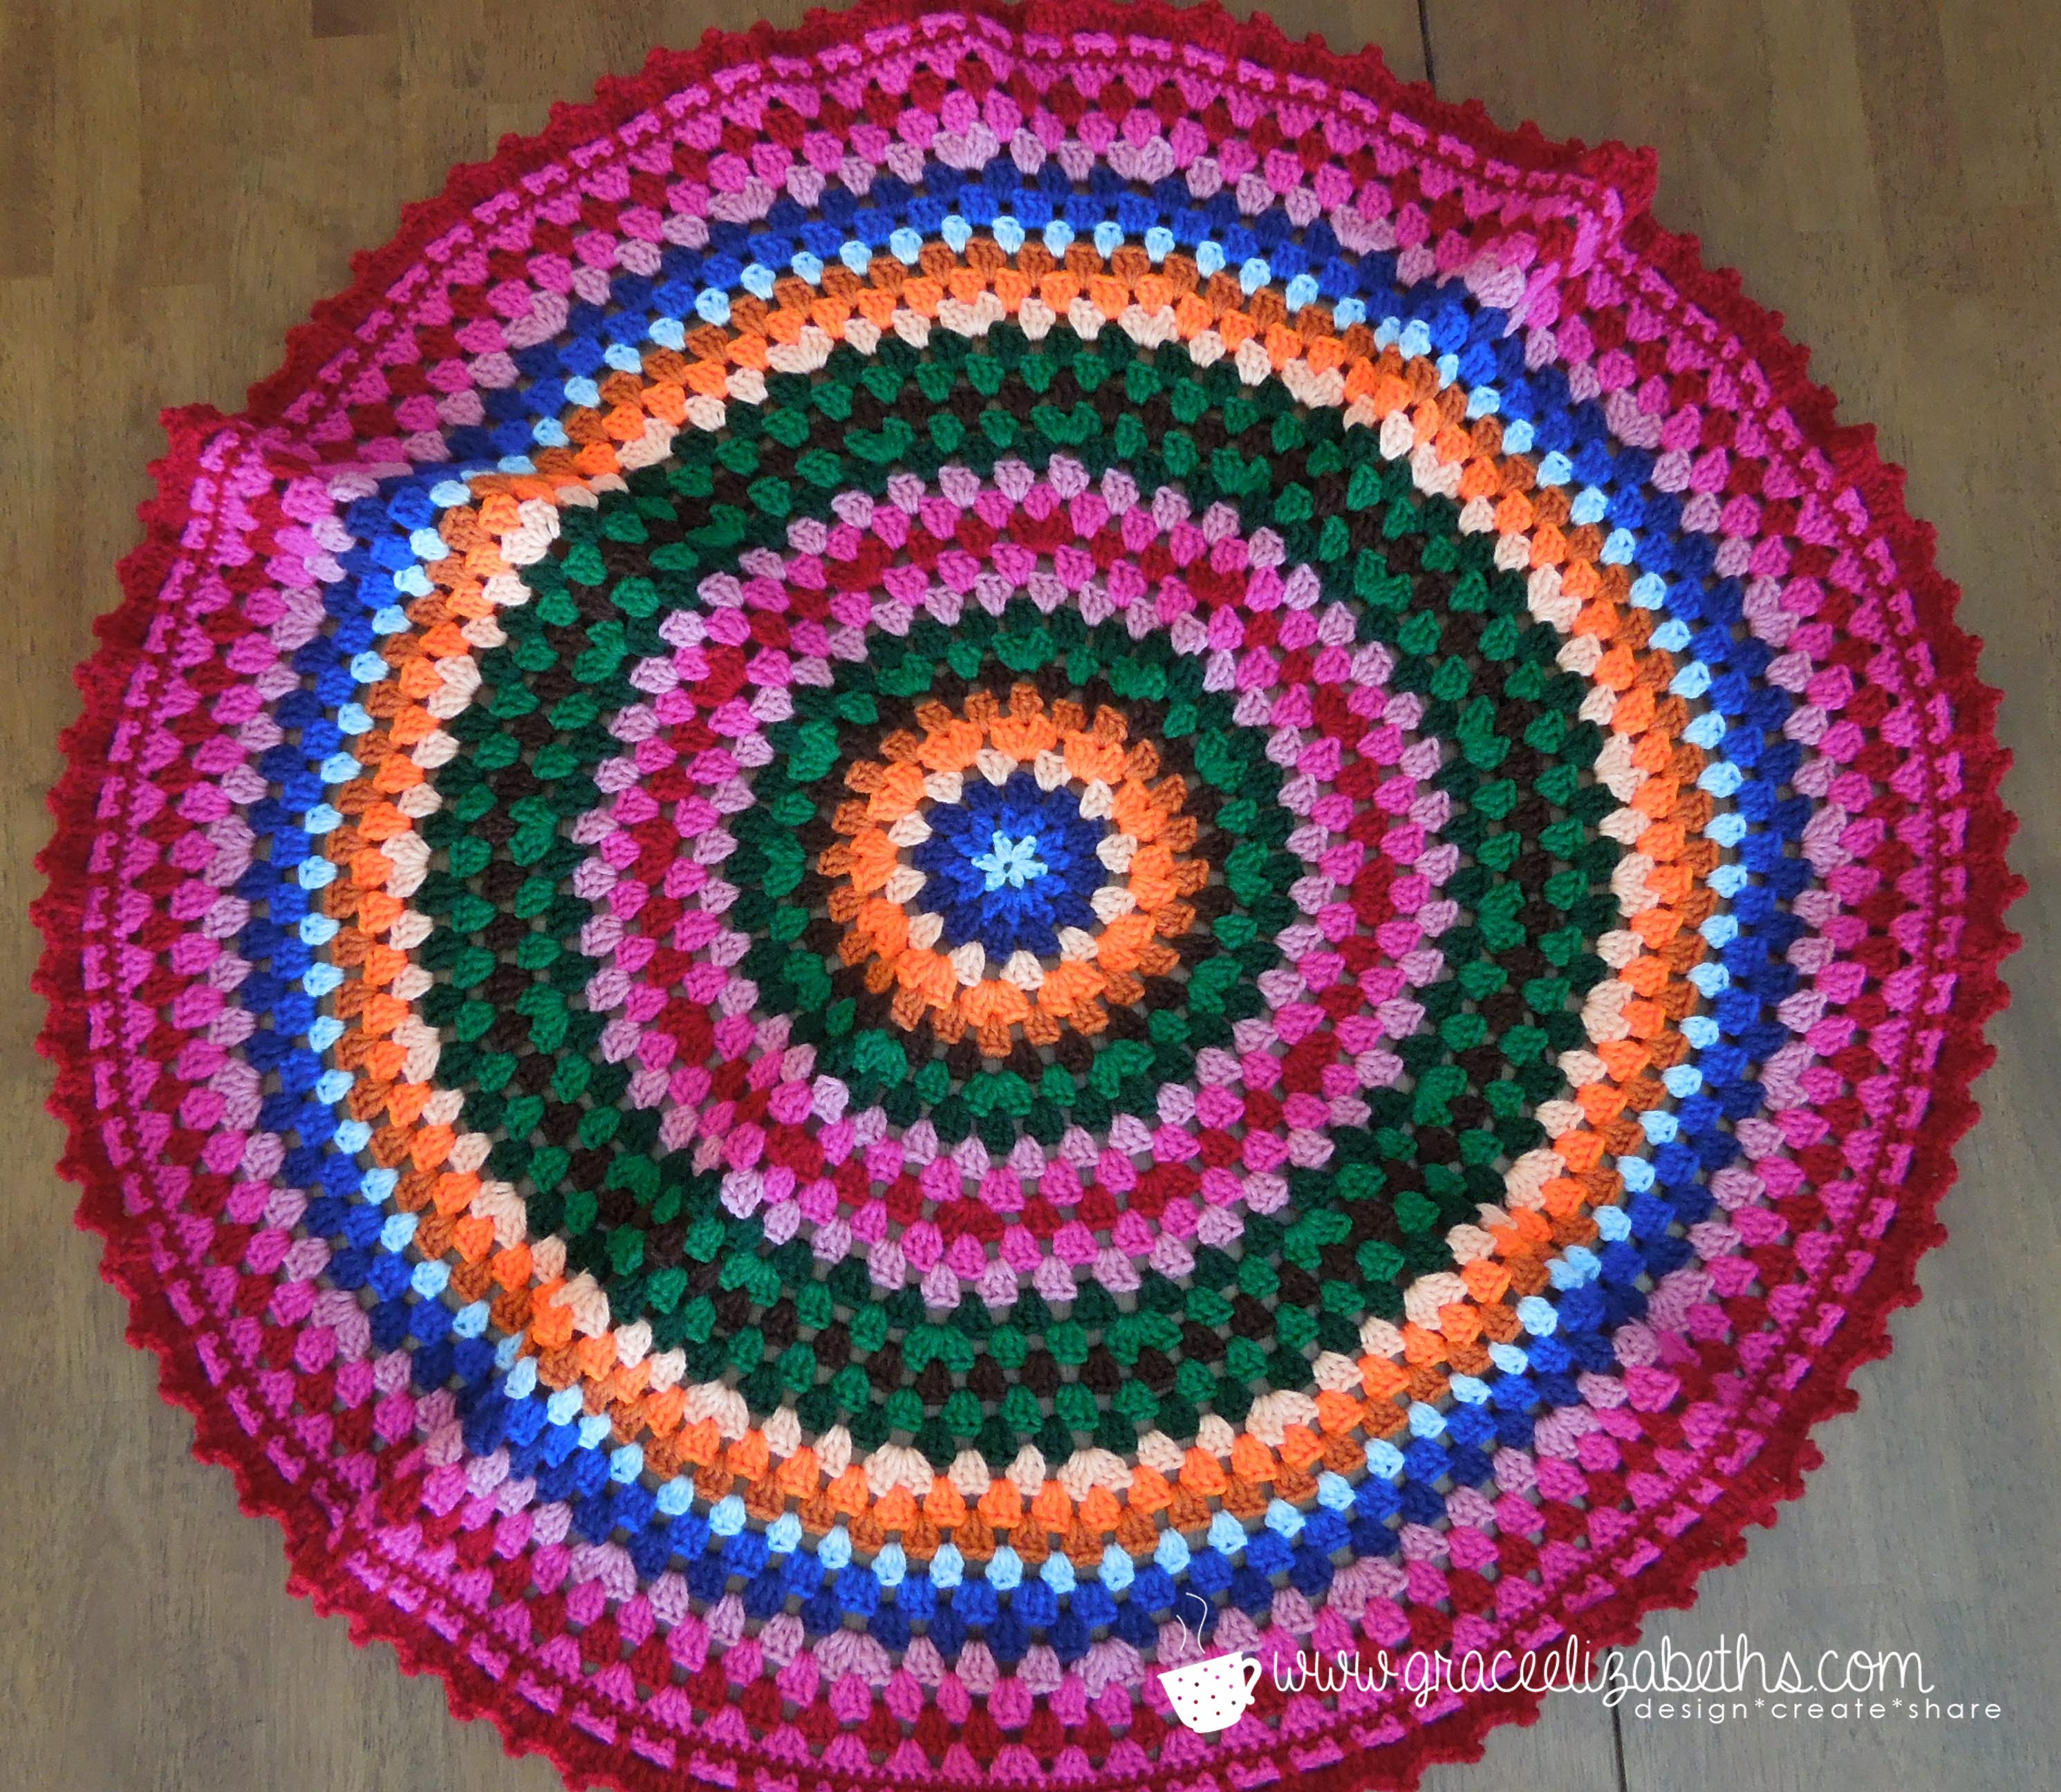 New Crochet Circle Baby Blanket Grace Elizabeths Crochet Circle Blanket Of Innovative 46 Models Crochet Circle Blanket